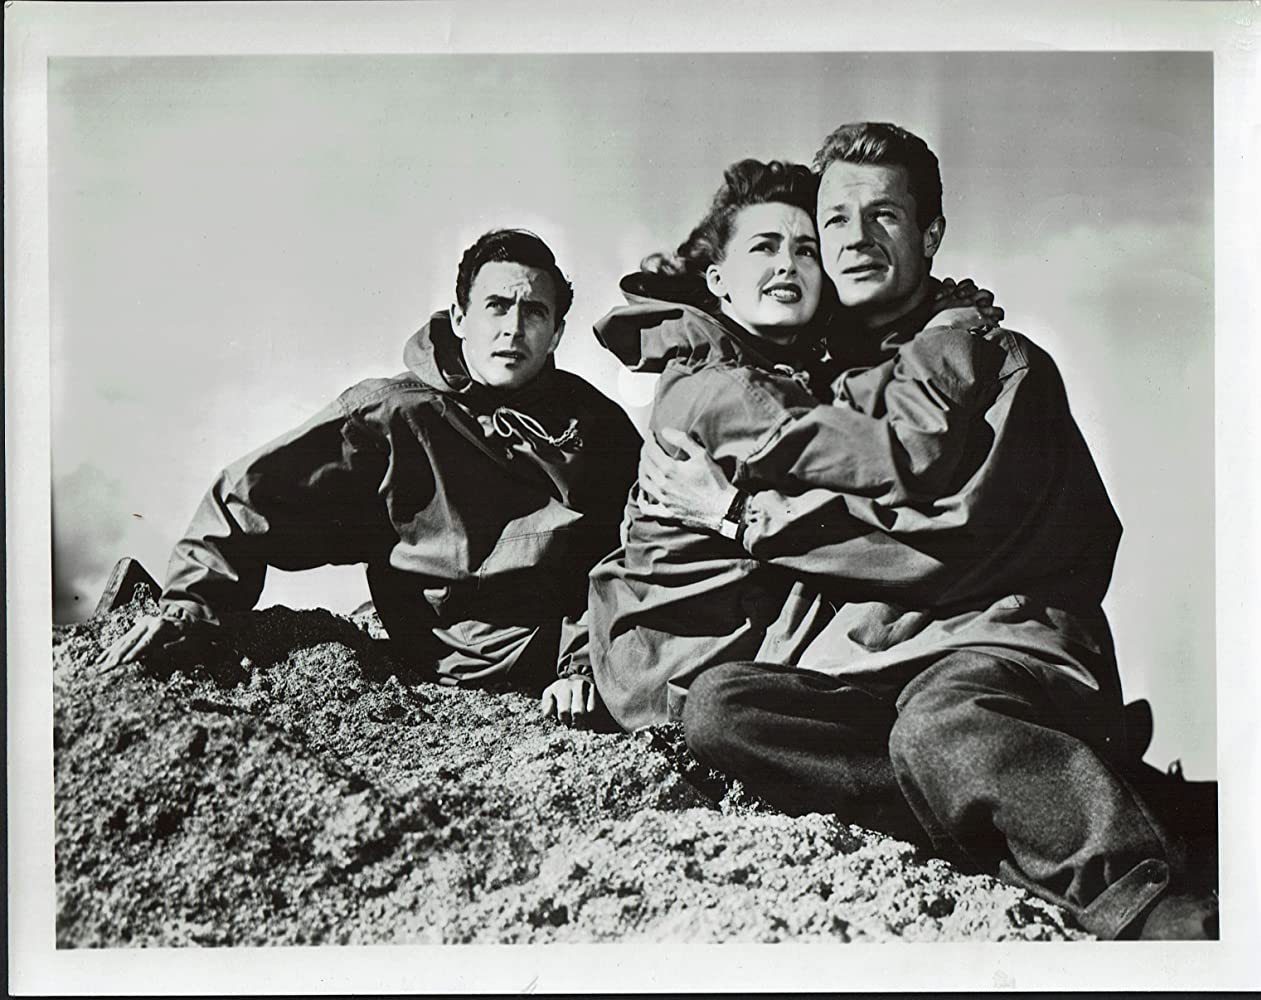 Richard Derr, Peter Hansen, and Barbara Rush in When Worlds Collide (1951)